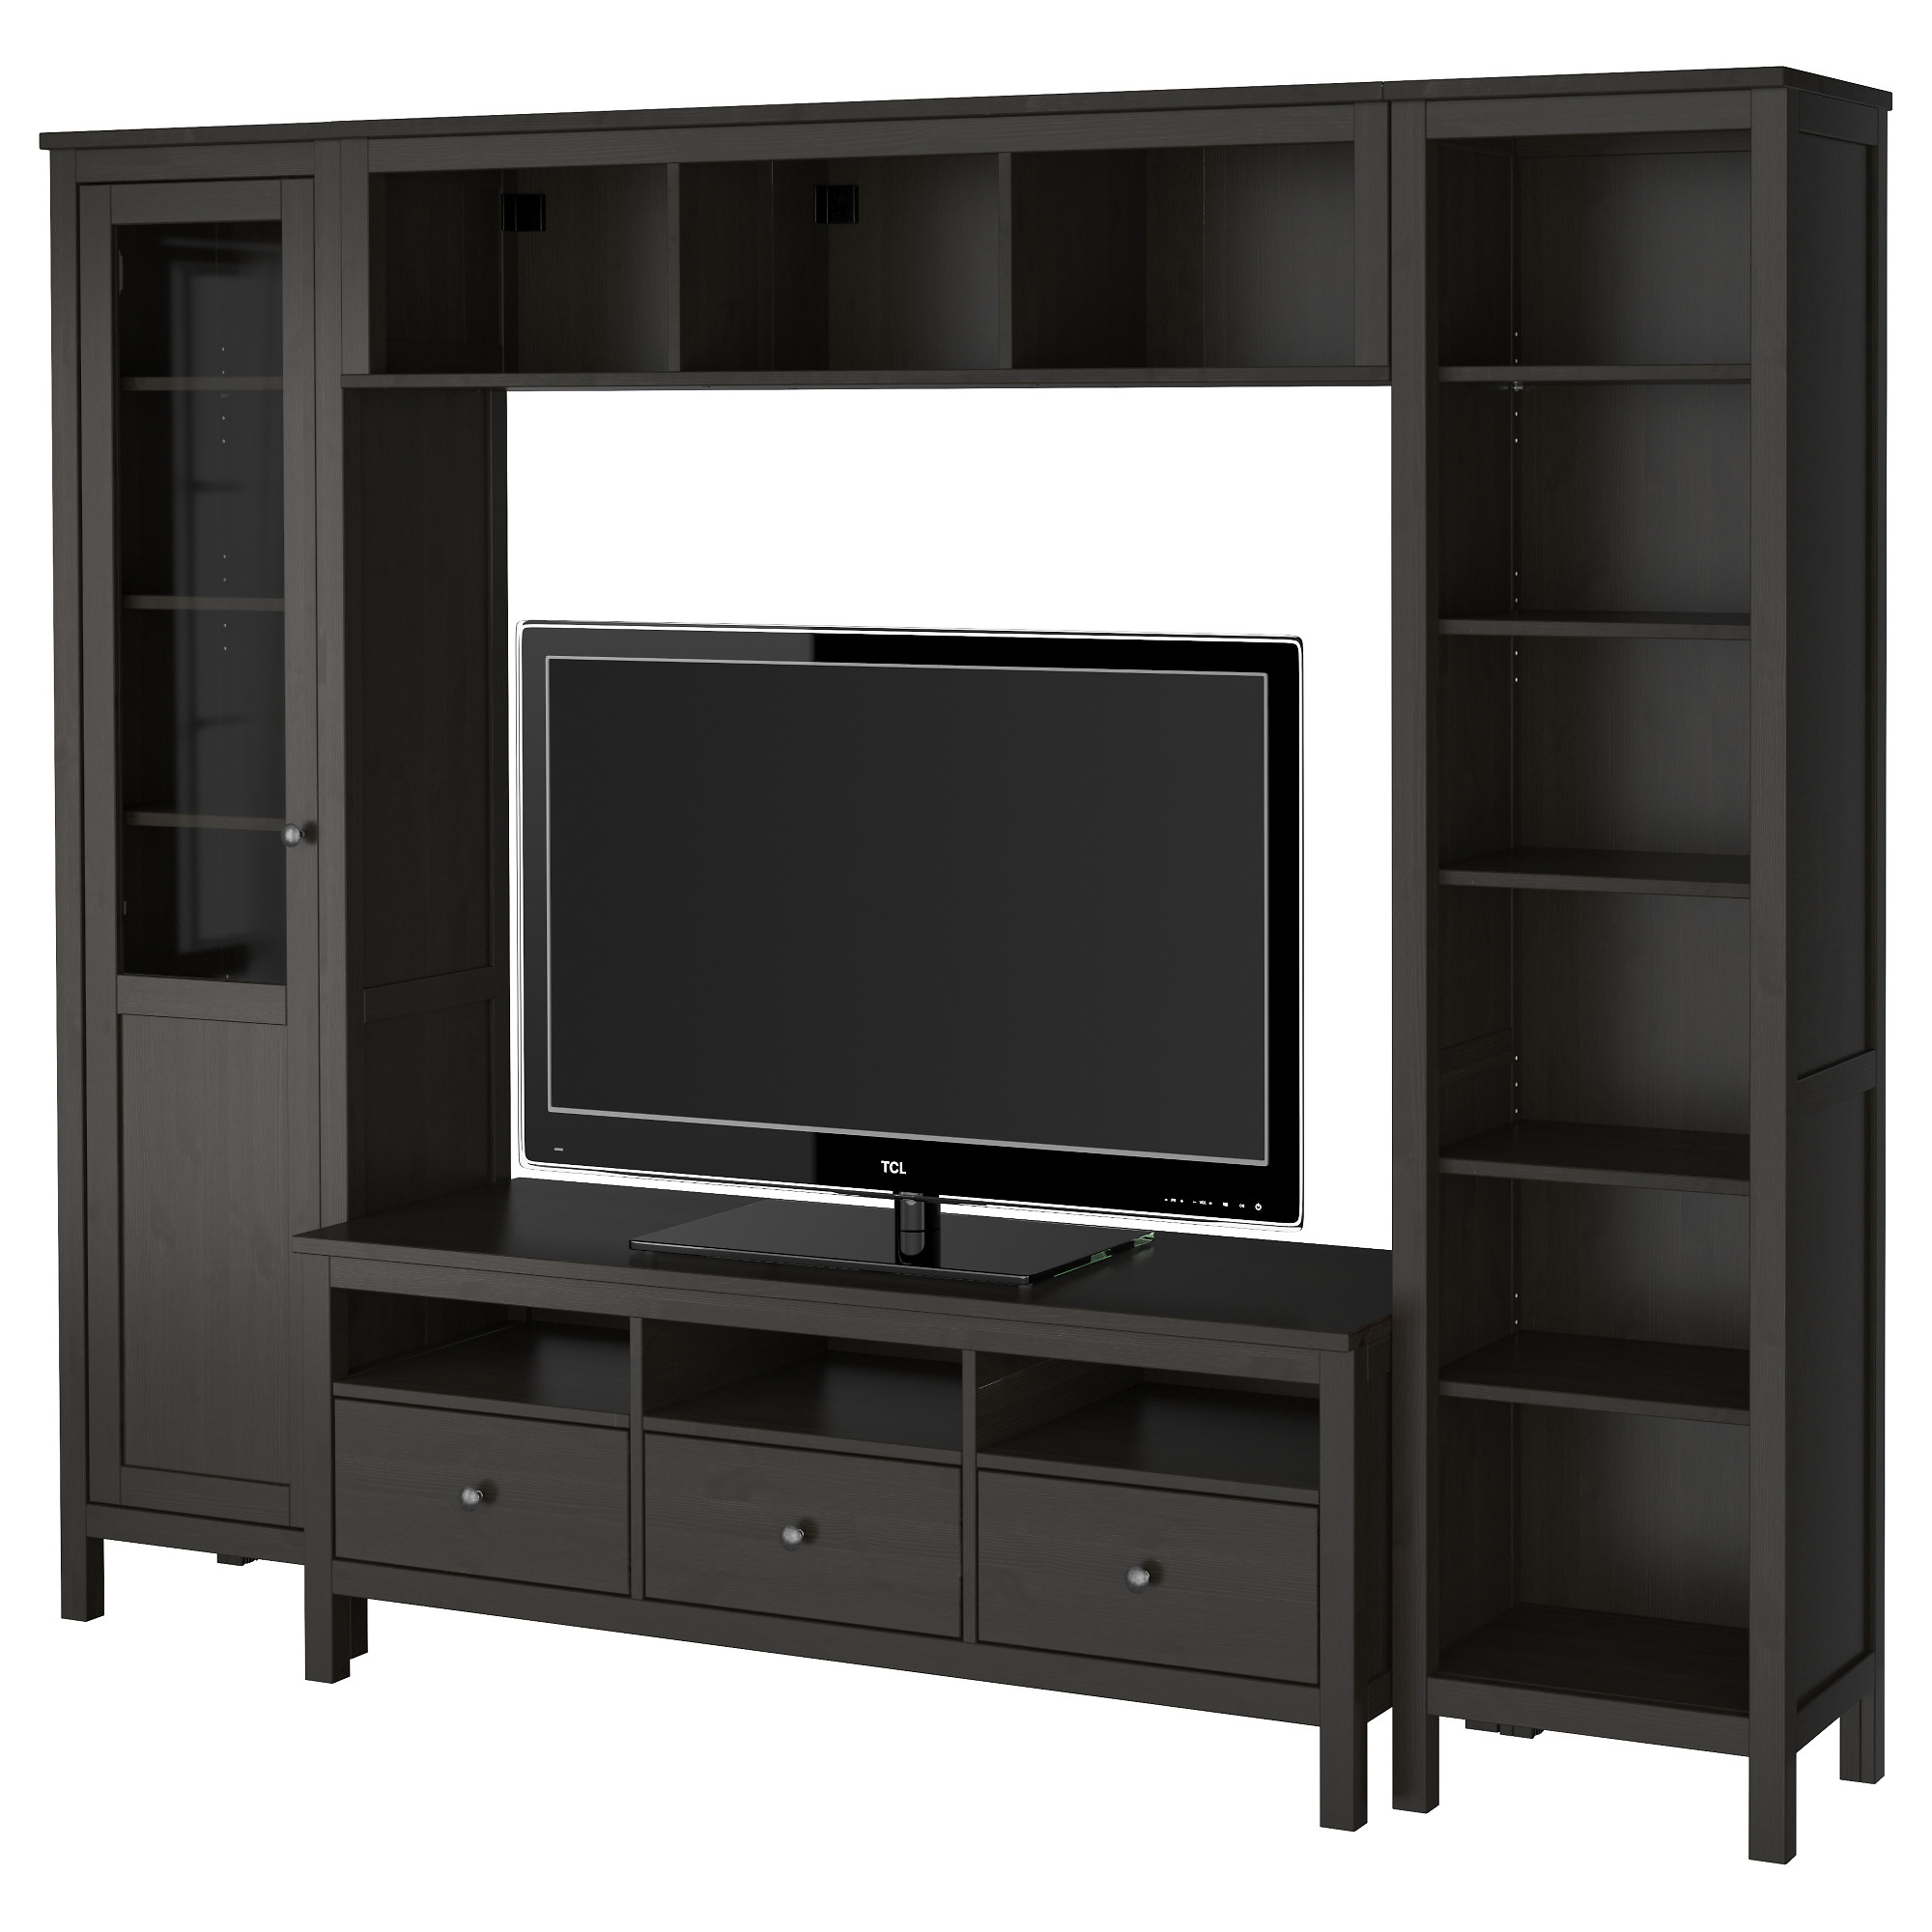 Entertainment Tv Stand Ikea Hemnes ~ Related Keywords & Suggestions for ikea media center[R